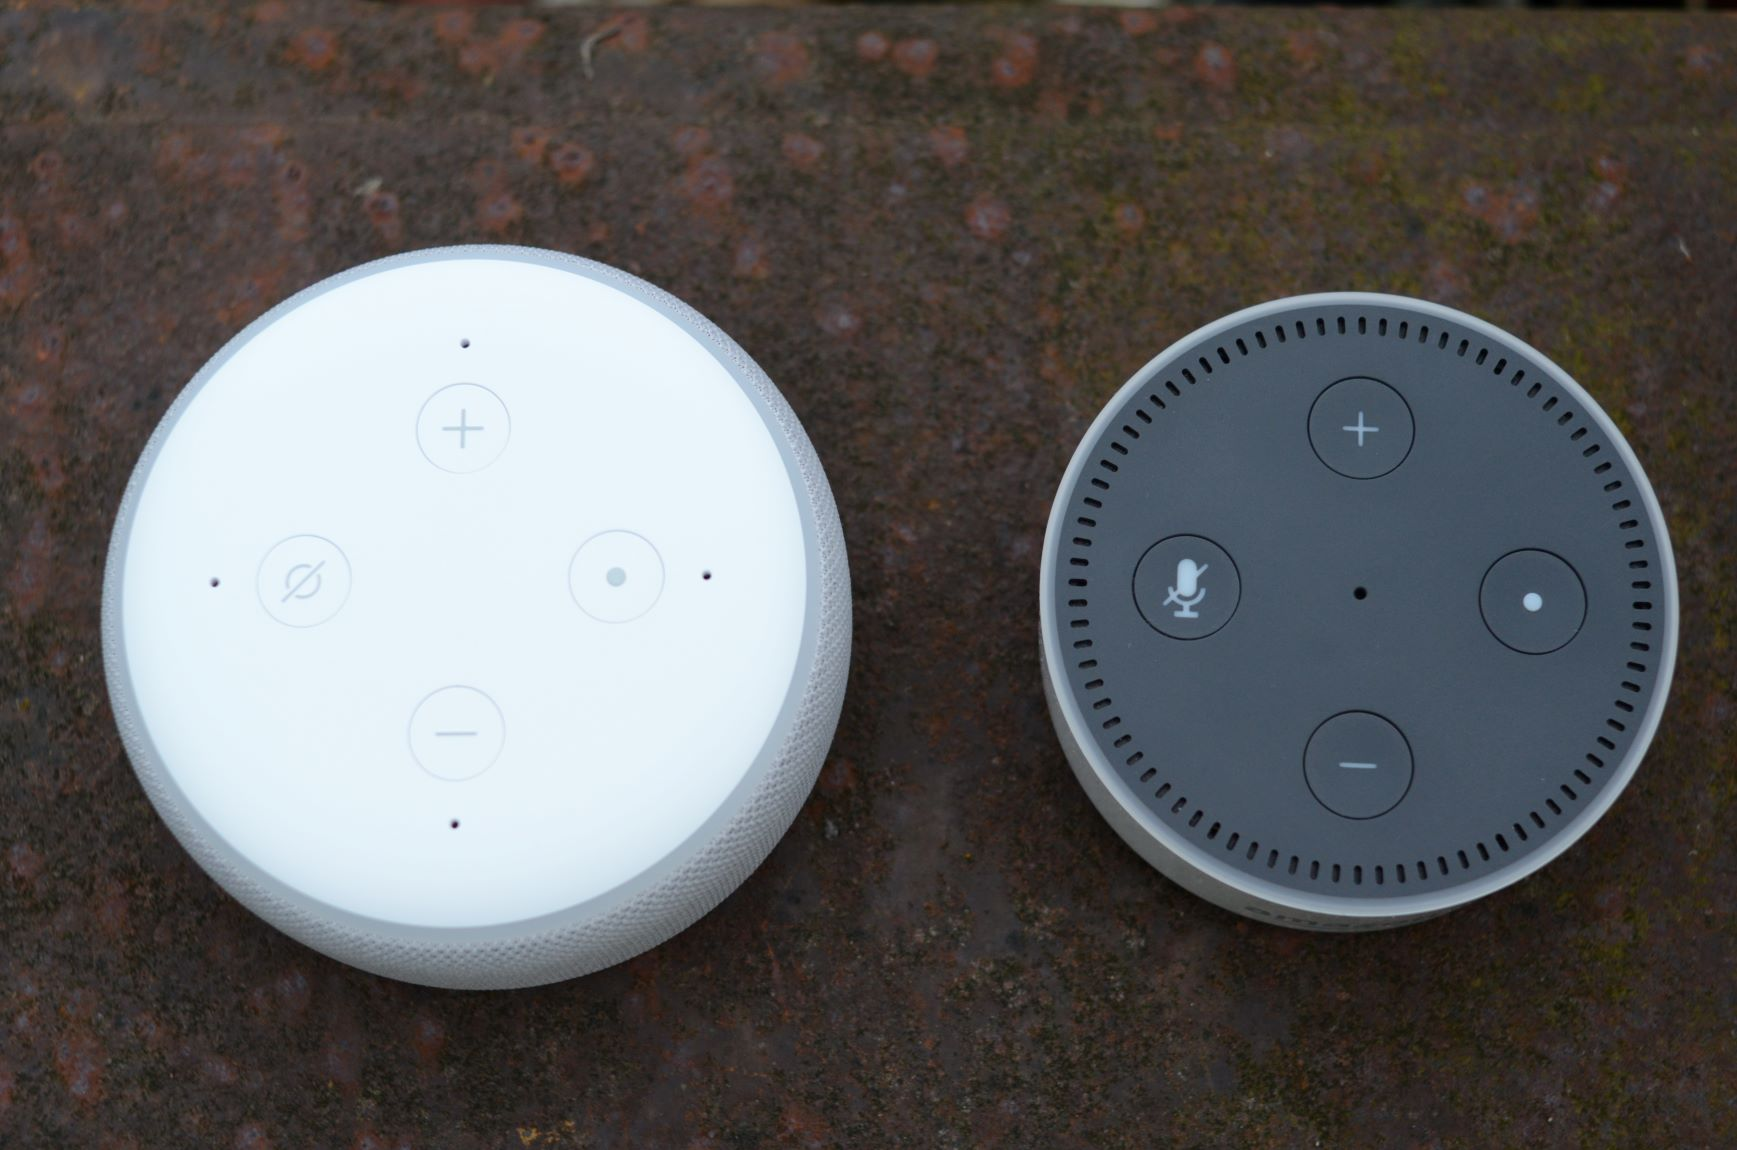 Echo Dot 2nd and 3rd Gen Side by Side